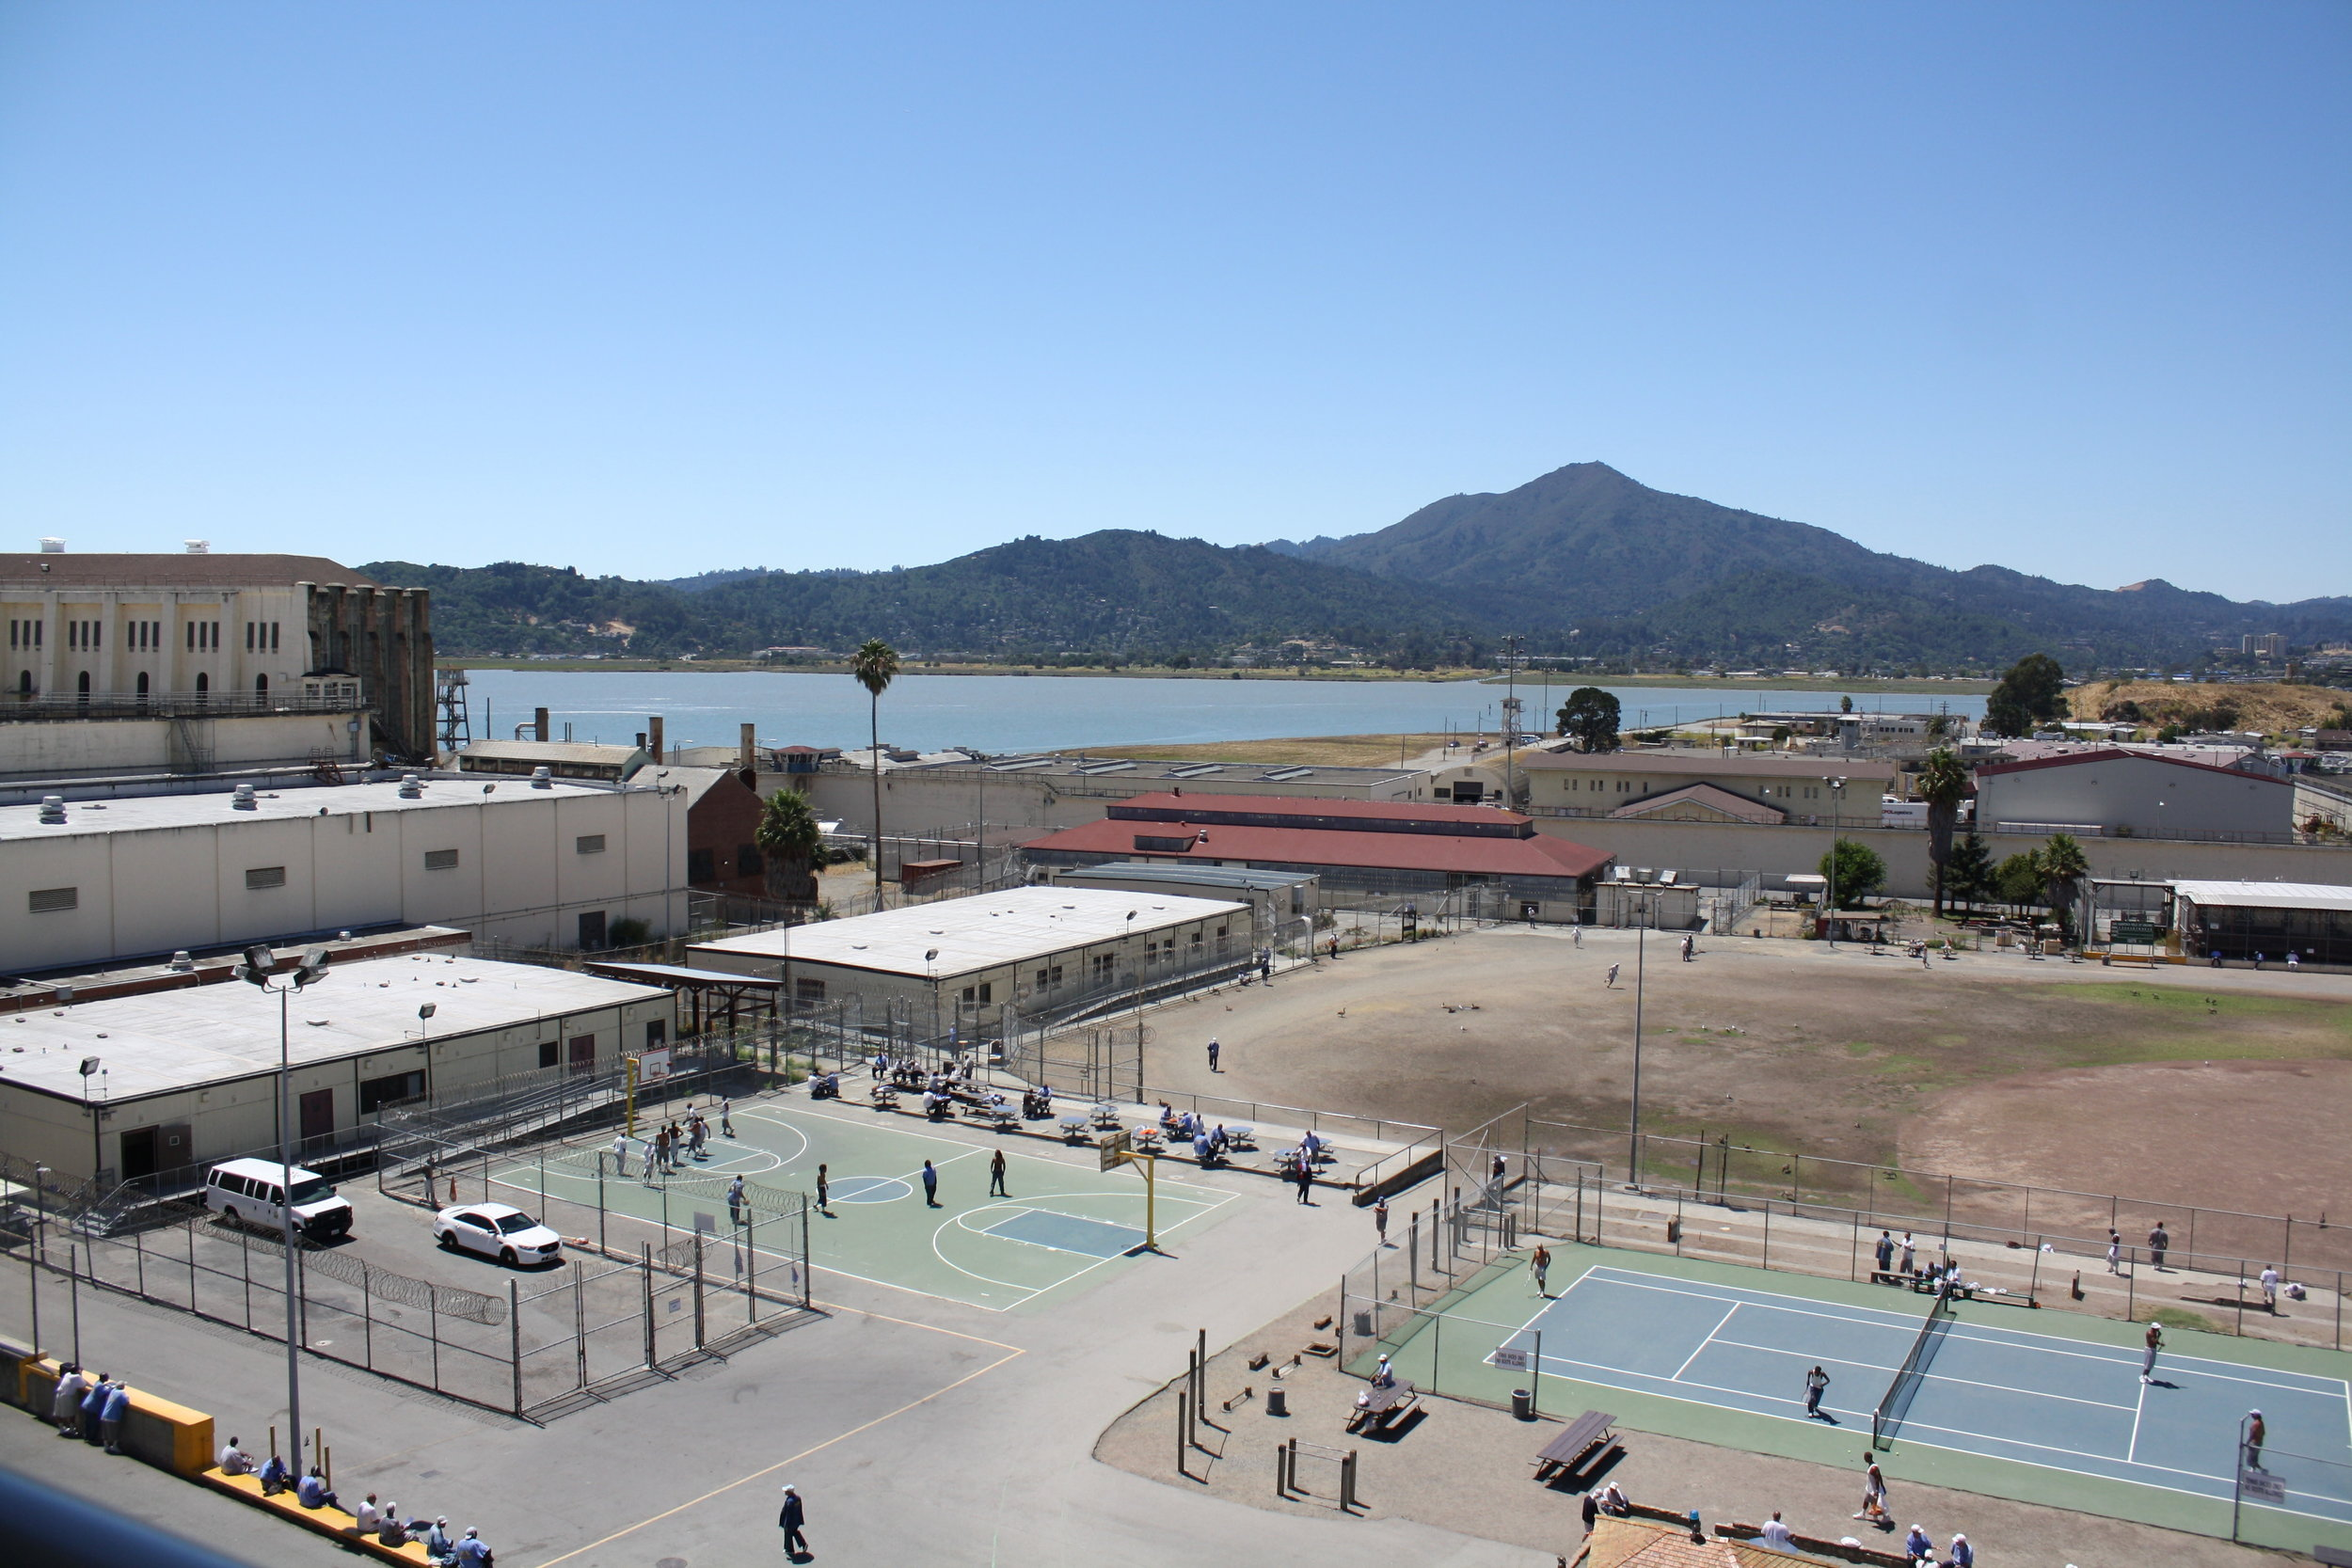 The San Quentin Yard - I've never seen it this empty, but this is where I walk across to get to the Education Center, the white rectangular building in the back. The San Quentin News newsroom is in the left corner of the building with the red roof. My first time inside, I did not expect to see a tennis court. More surprising though were the geese and ducks that usually hang out in the baseball field.